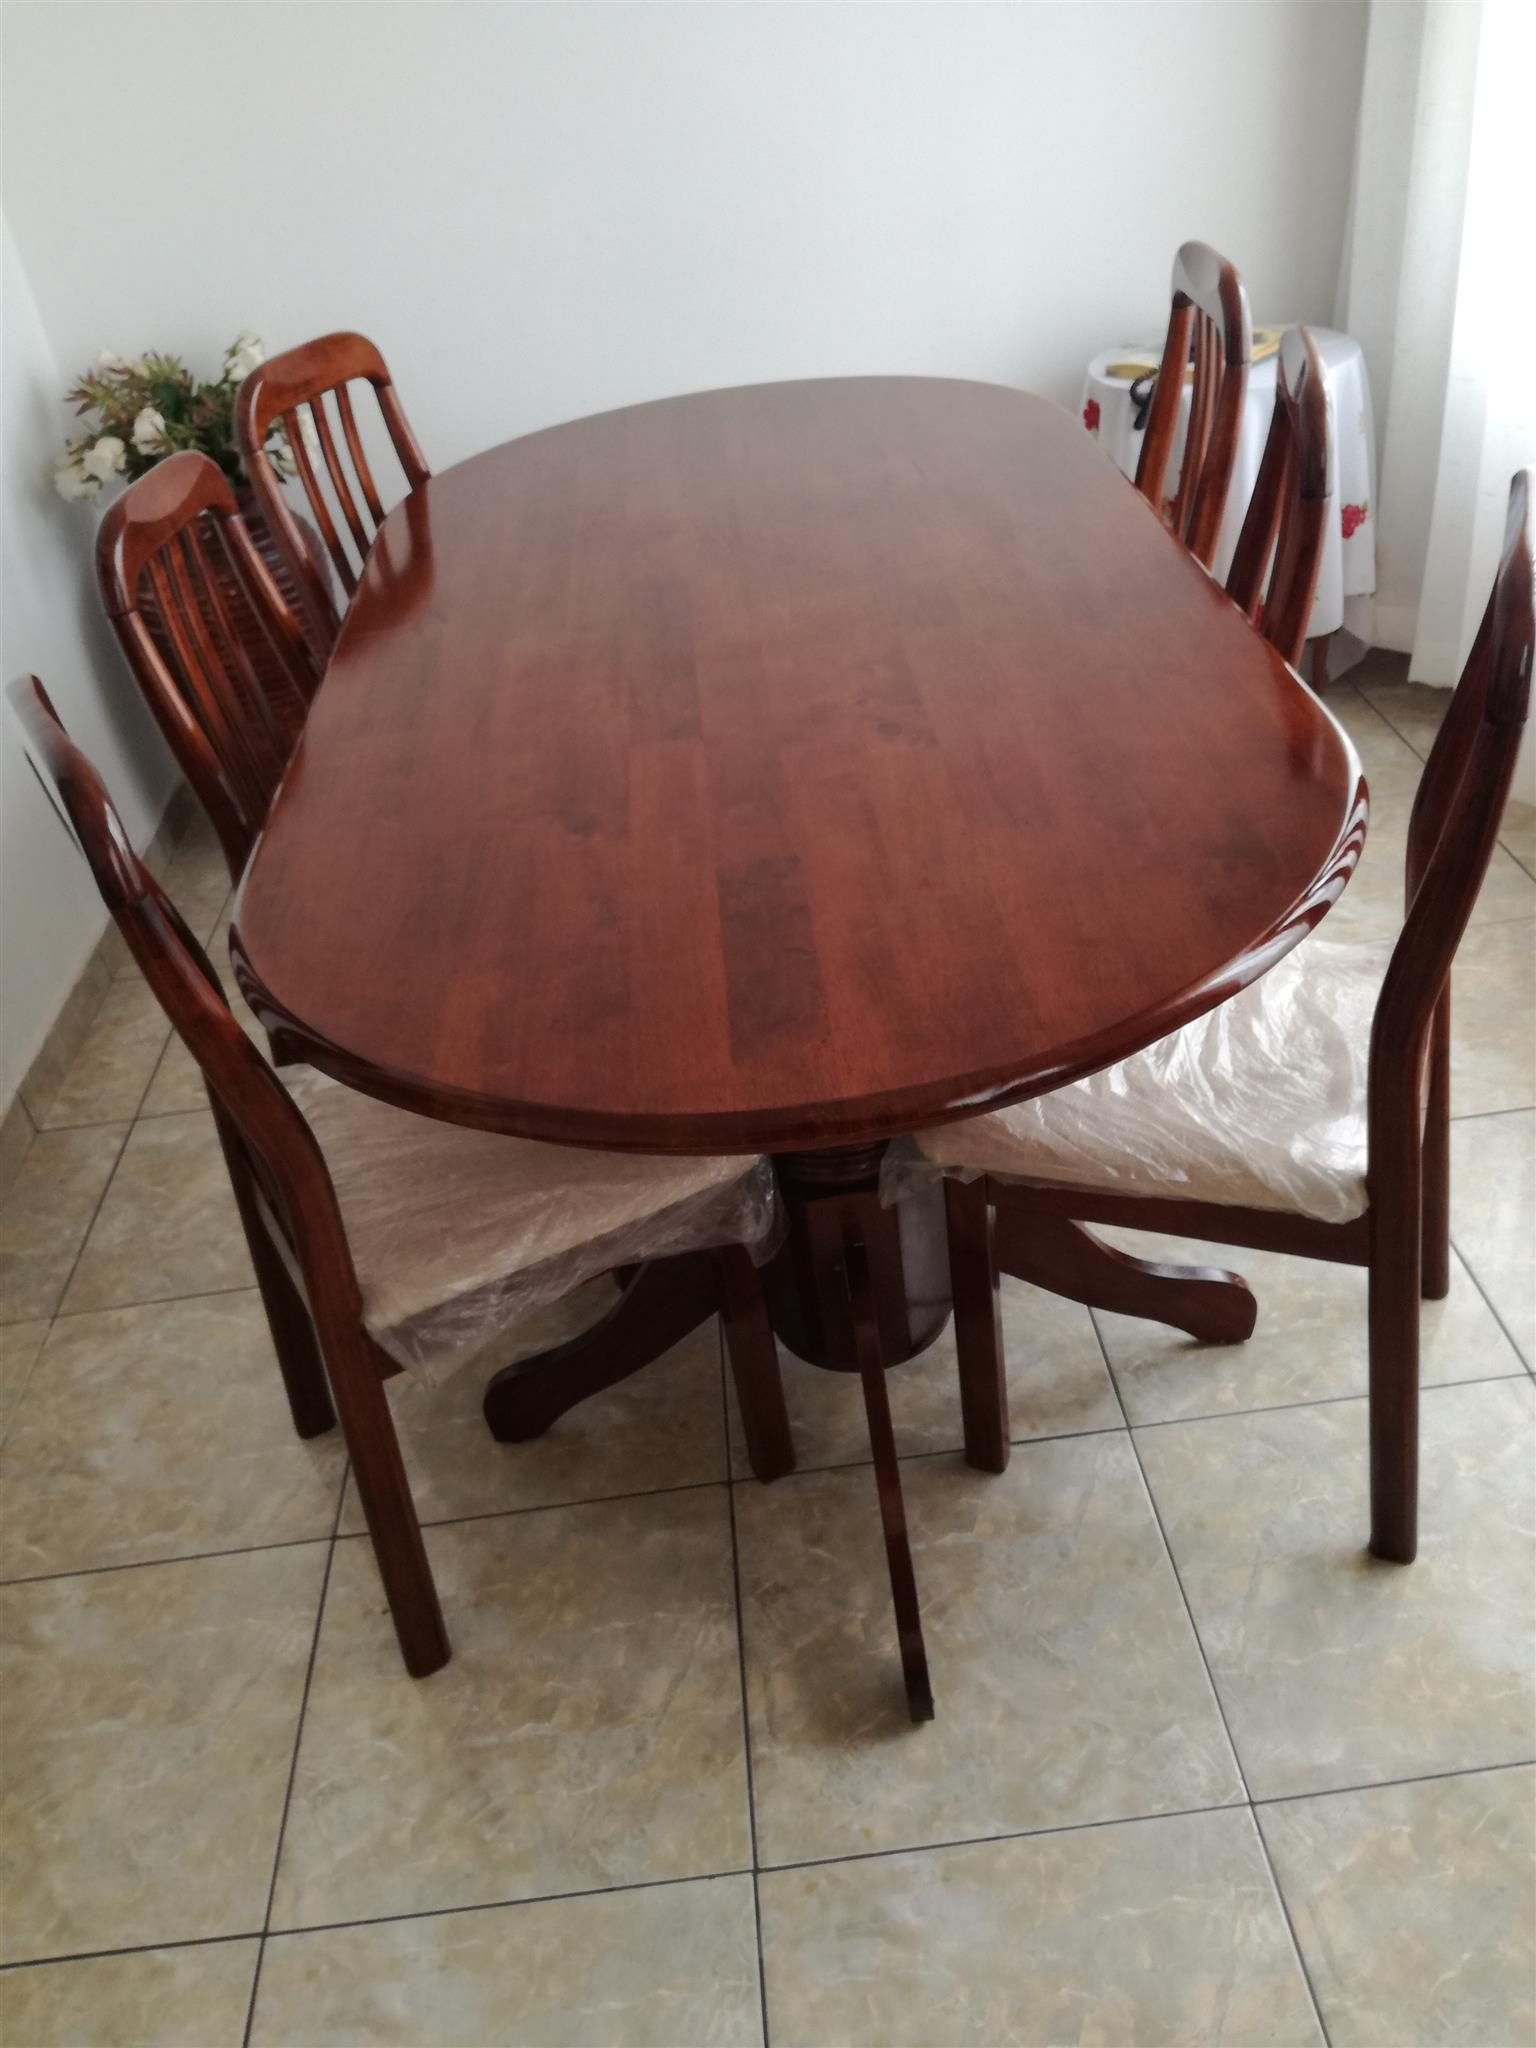 Kitchen Table For Sale Johannesburg Kitchen Tables For Sale